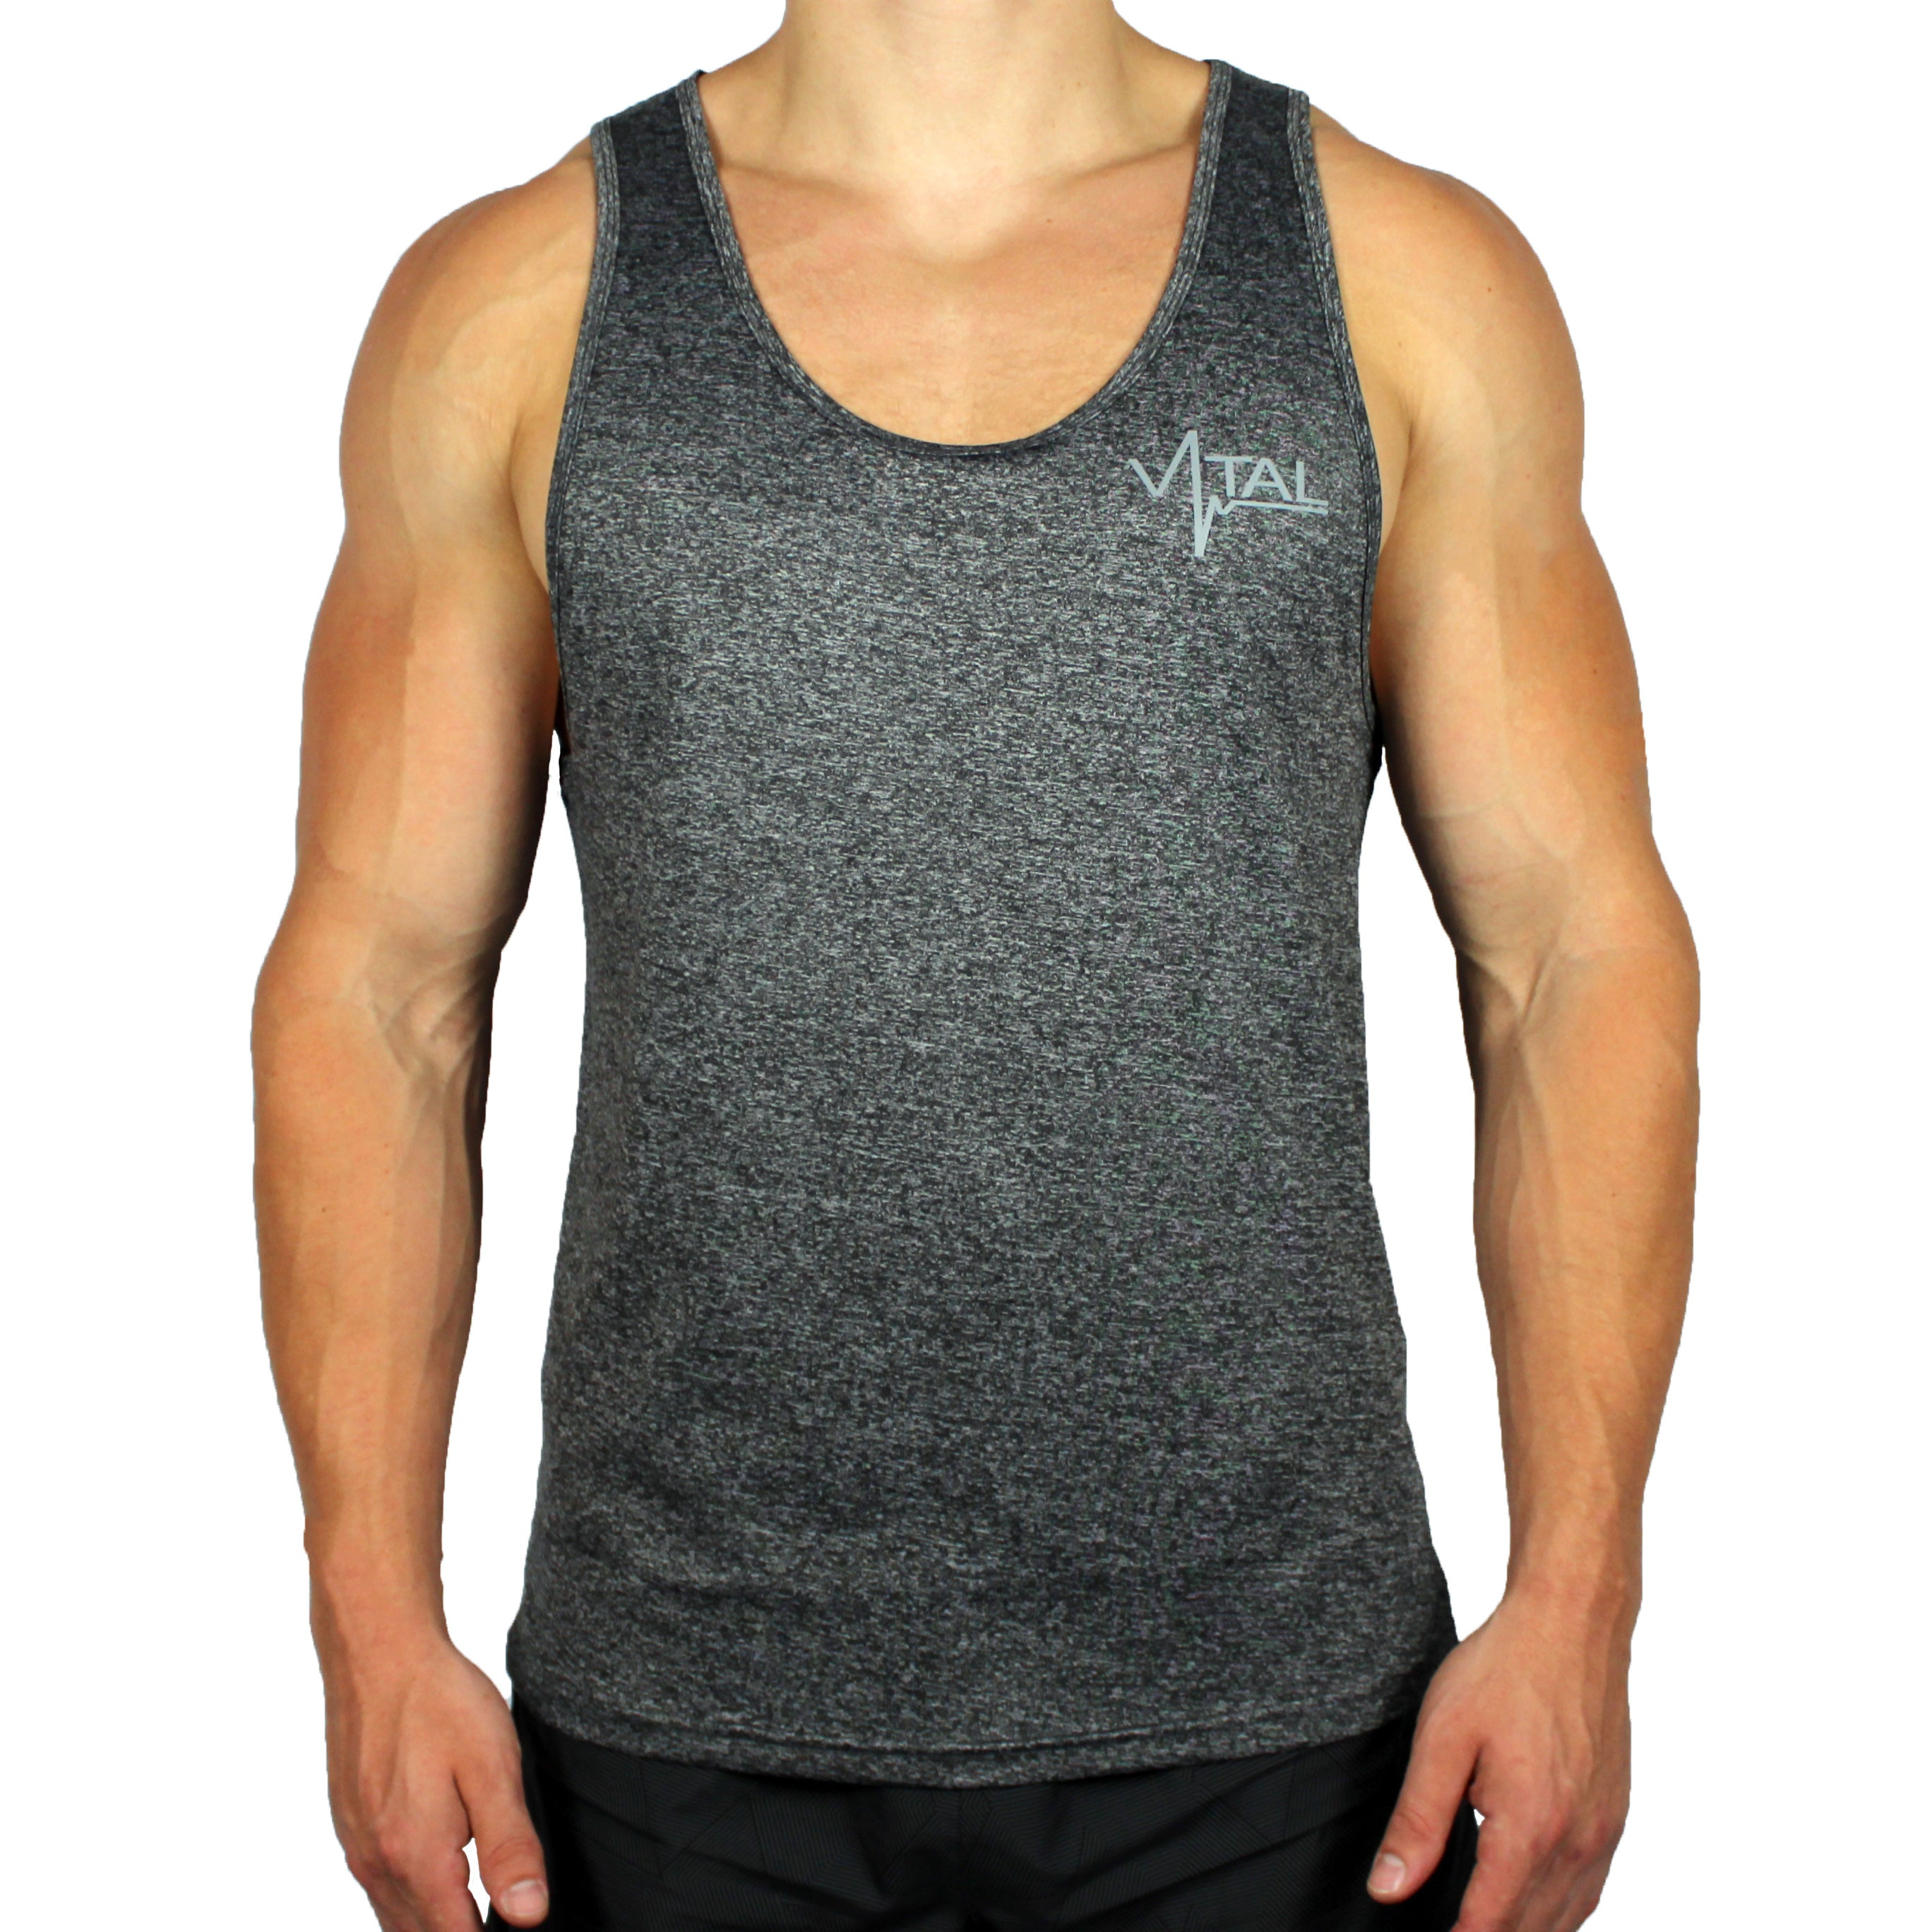 Vital Apparel Performance Tank Top - Heather Dark Grey